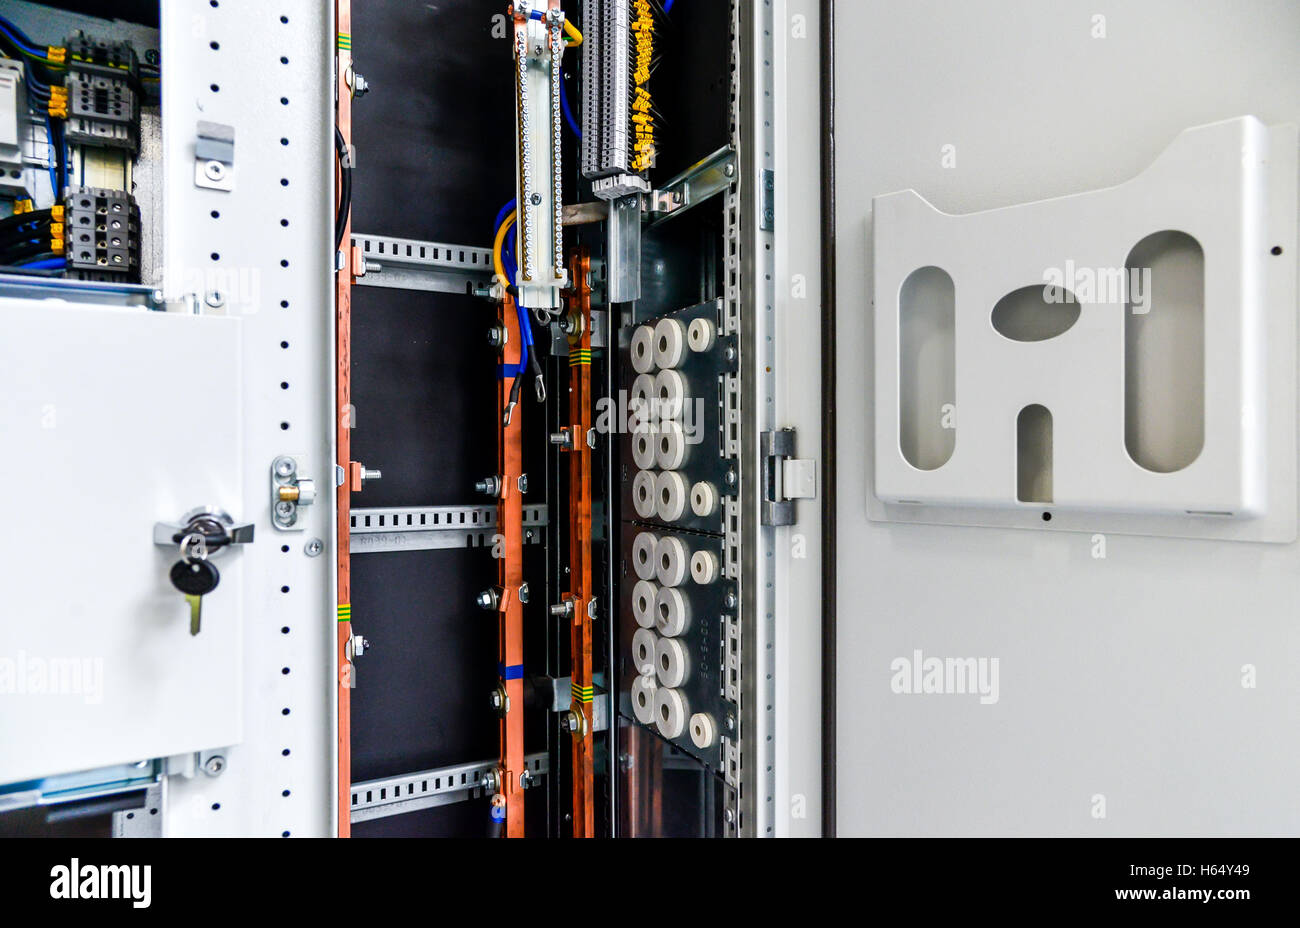 Low-voltage cabinet for power and distribution electricity. Uninterrupted, electrical voltage. - Stock Image